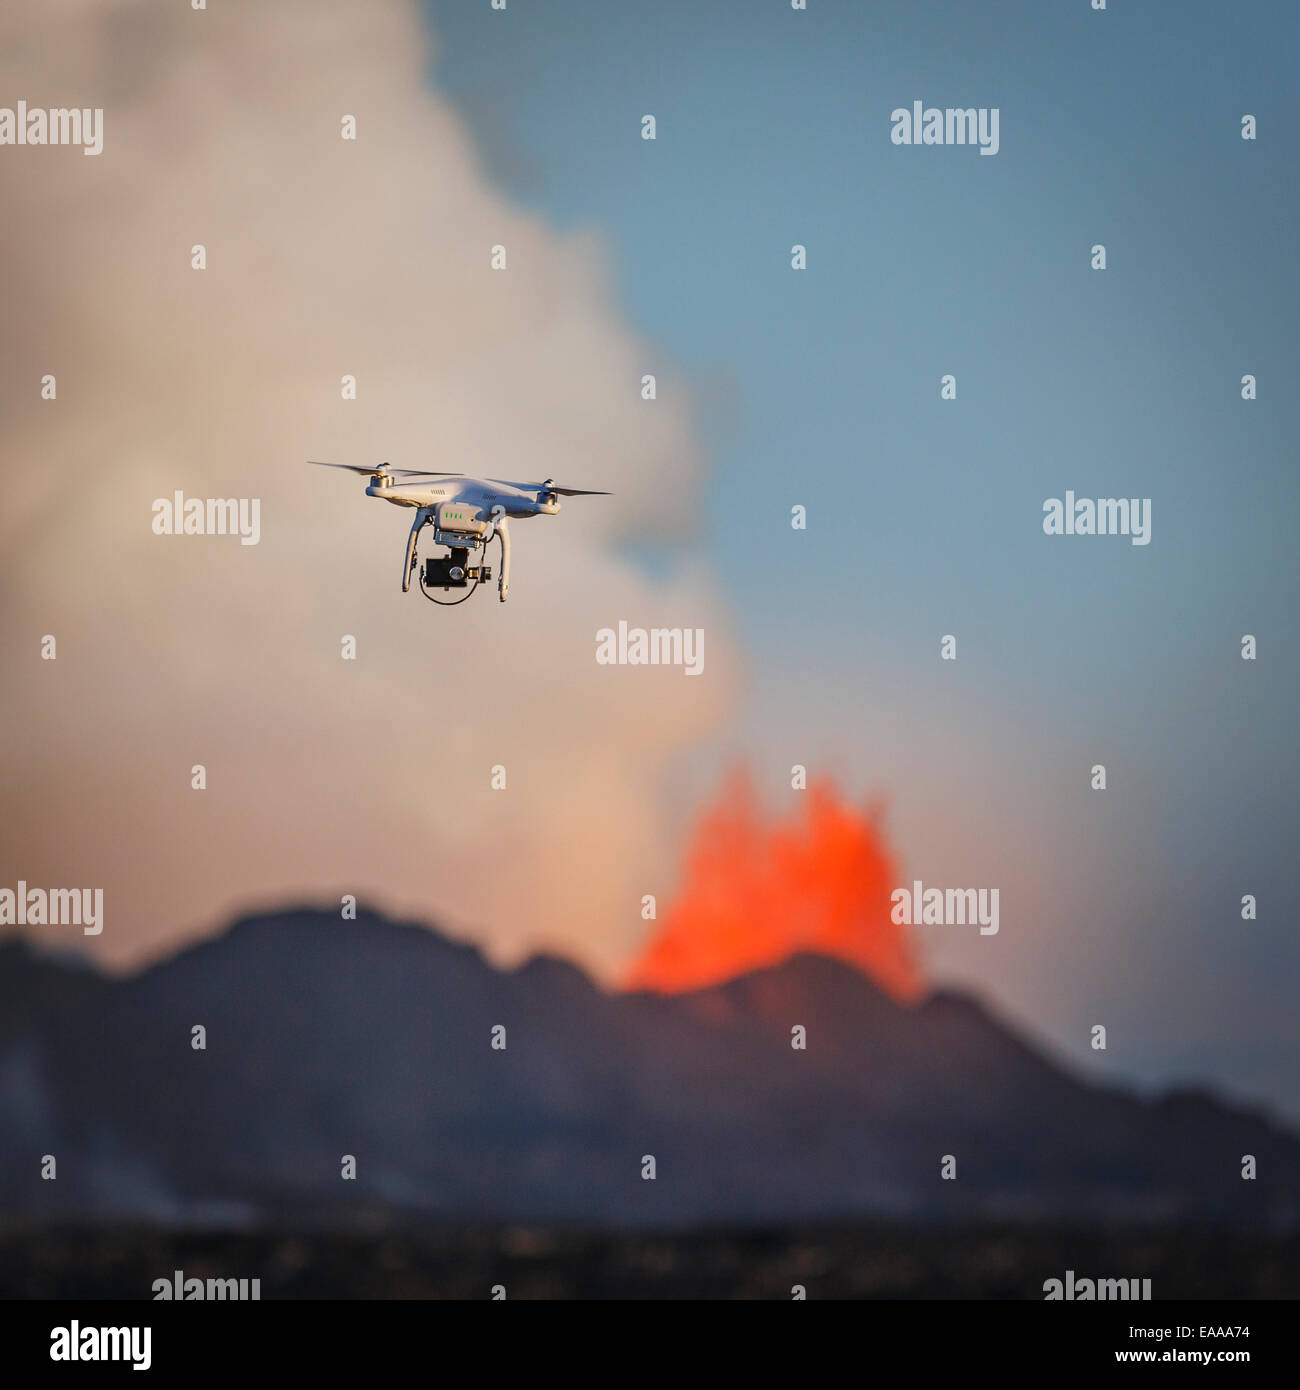 DJI Phantom 2 flying by the Holuhraun Fissure Eruption. Aerial view of lava and plumes. - Stock Image